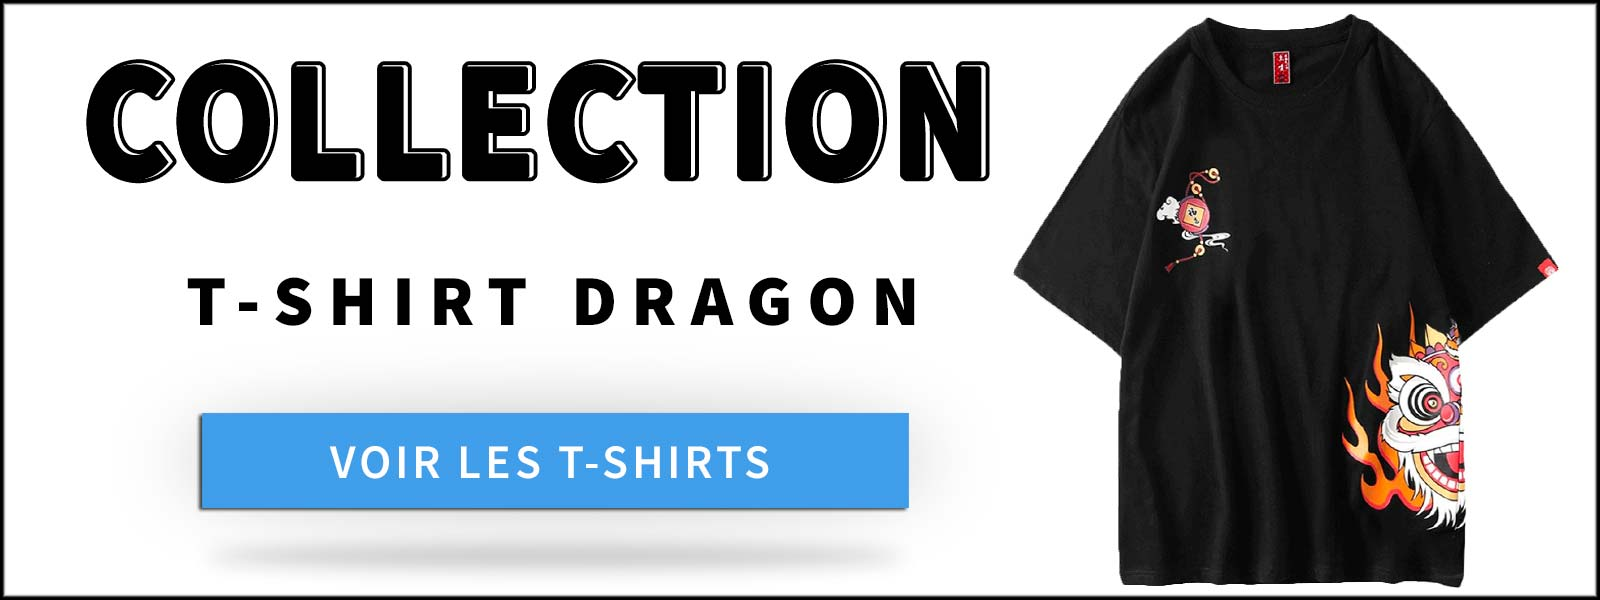 Tee shirts dragon